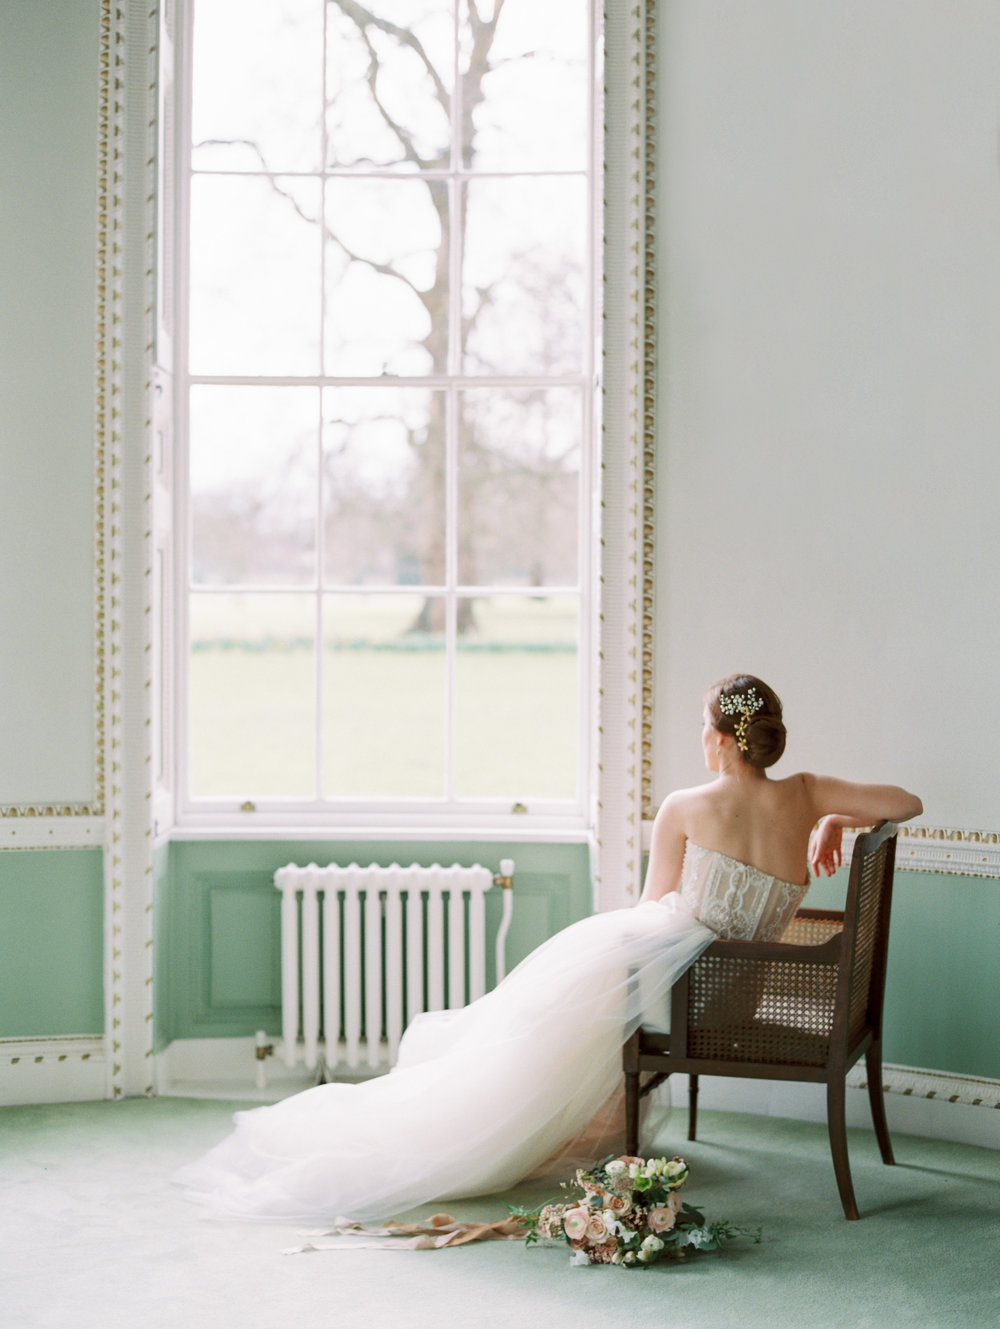 The Timeless Stylist-Elegant and Romantic Wedding Styling-Bride in Stately Home Wedding Venue.jpg